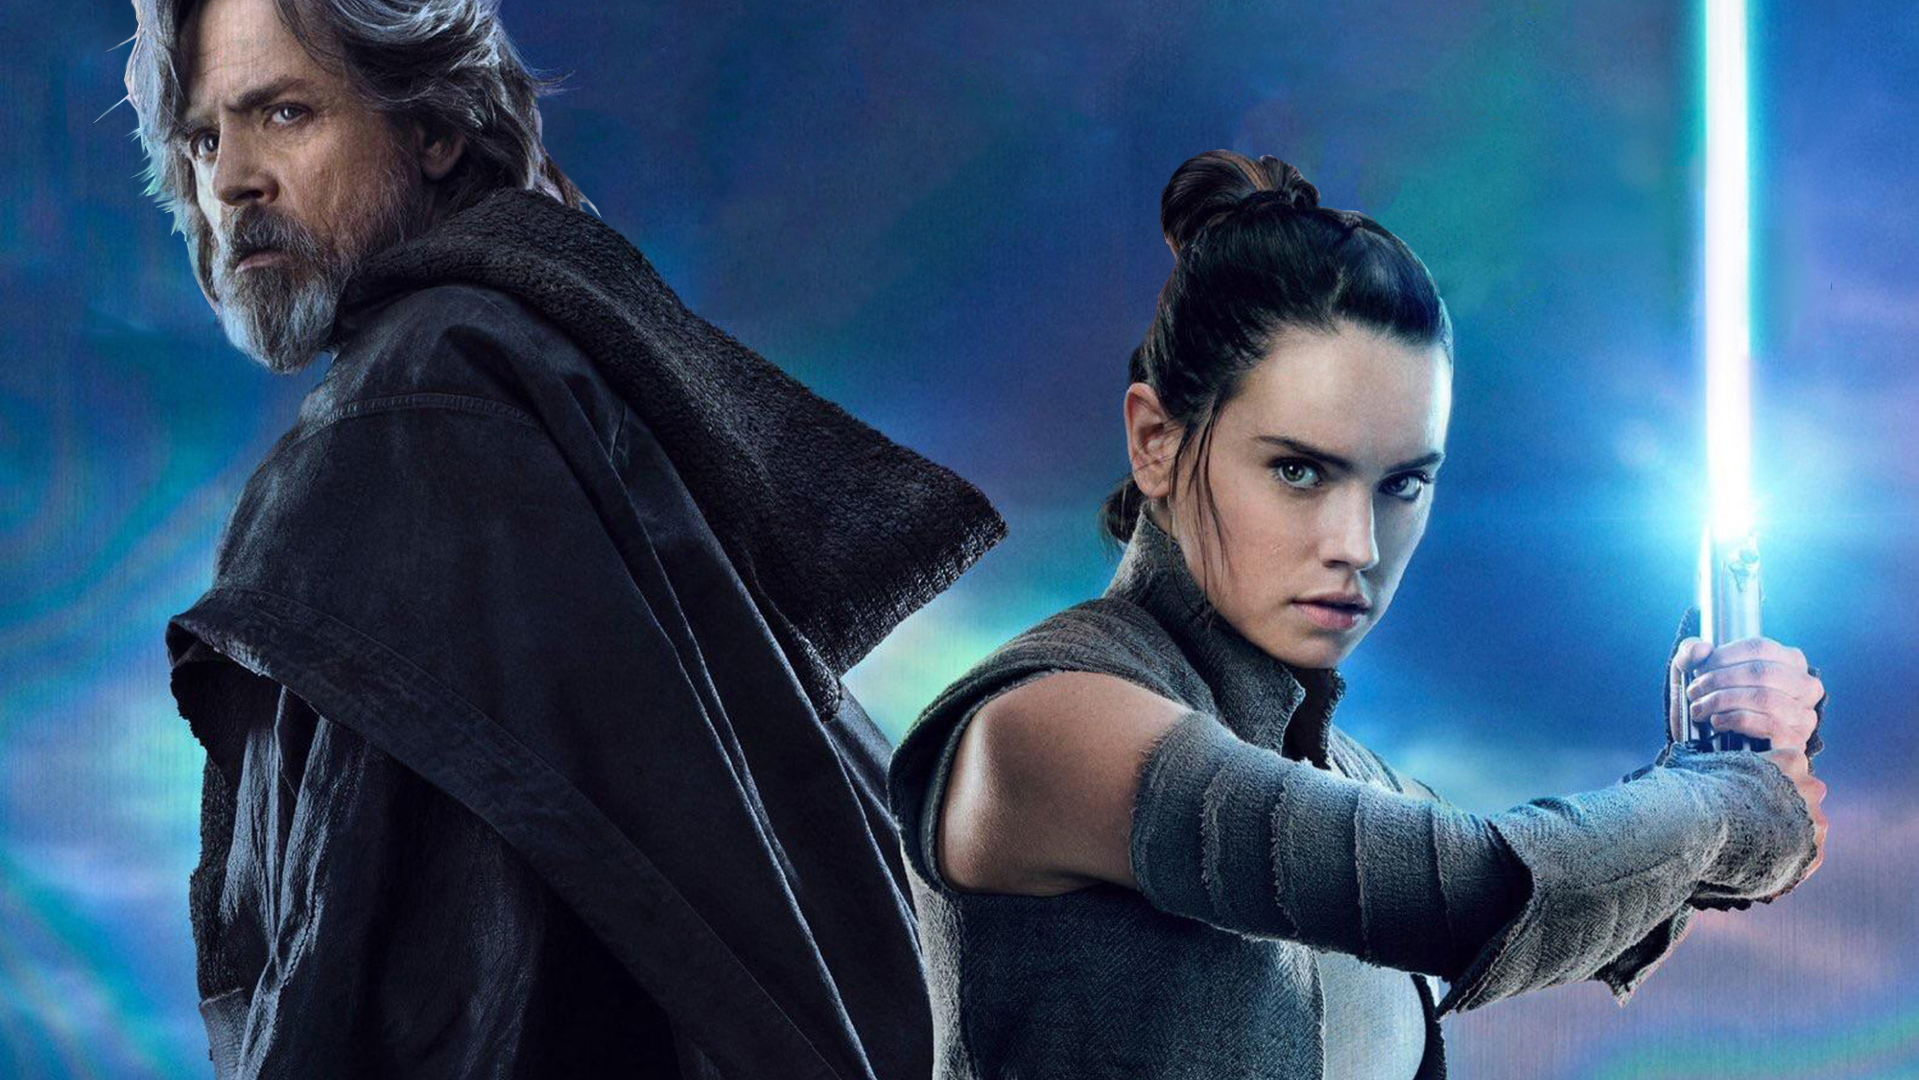 1920x1080 Rey And Luke Star Wars The Last Jedi 1080p Laptop Full Hd Wallpaper Hd Movies 4k Wallpapers Images Photos And Background